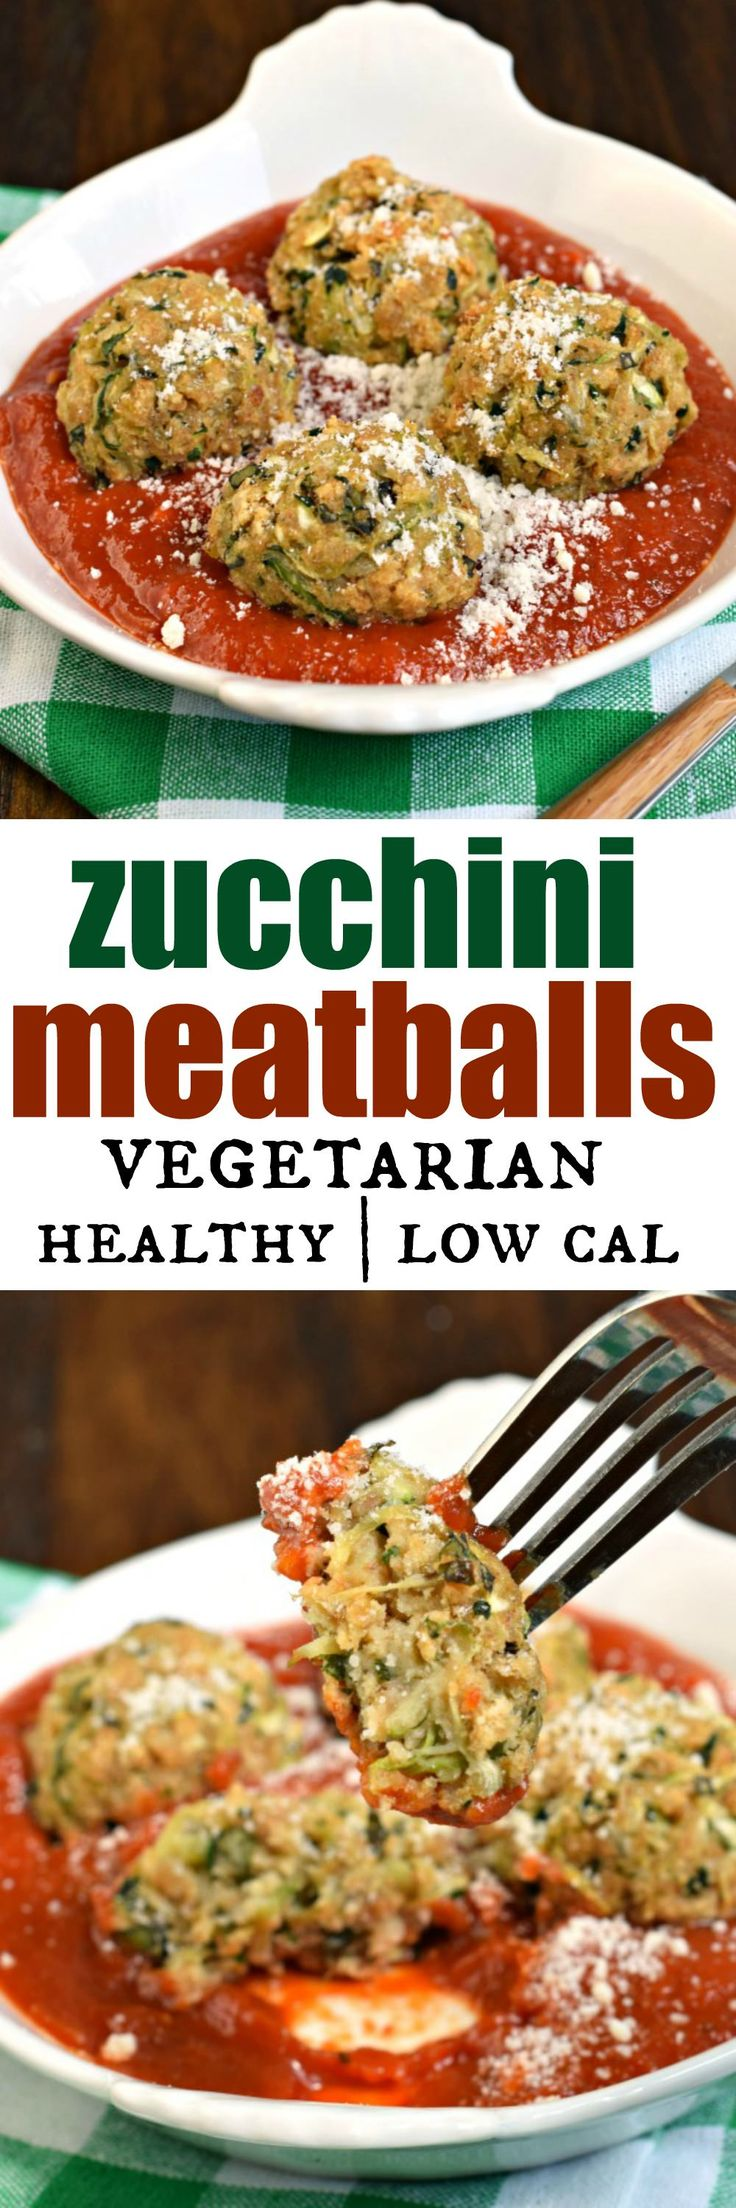 You'll love these meatless Zucchini Meatballs for a healthy, fresh vegetarian dinner! Serve them up with your favorite pasta sauce and noodles for a dinner your friends and family will love!